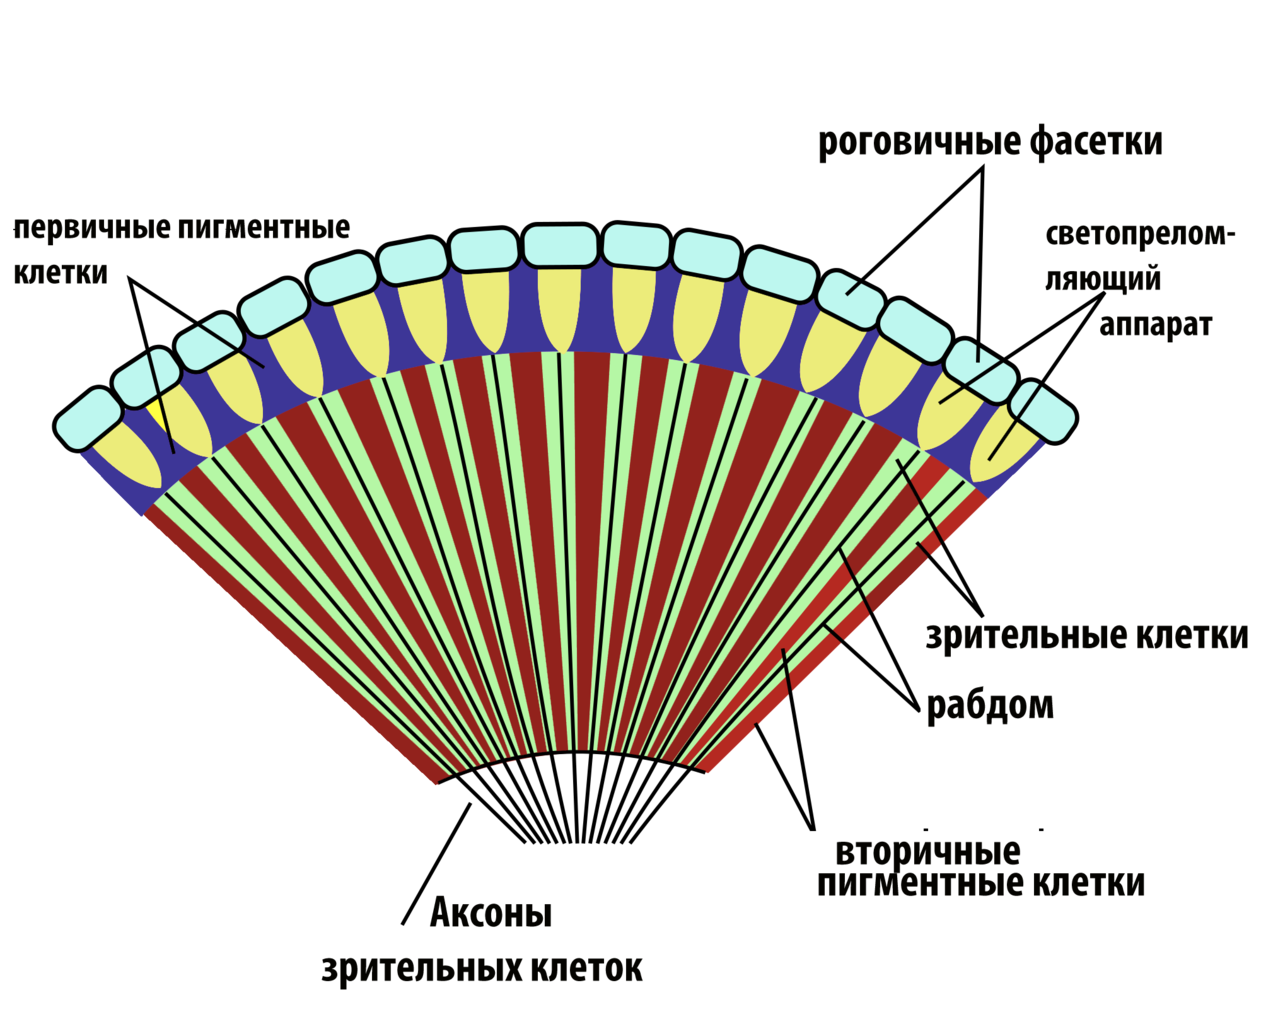 Fileinsect Compound Eye Diagram Rusg Wikimedia Commons